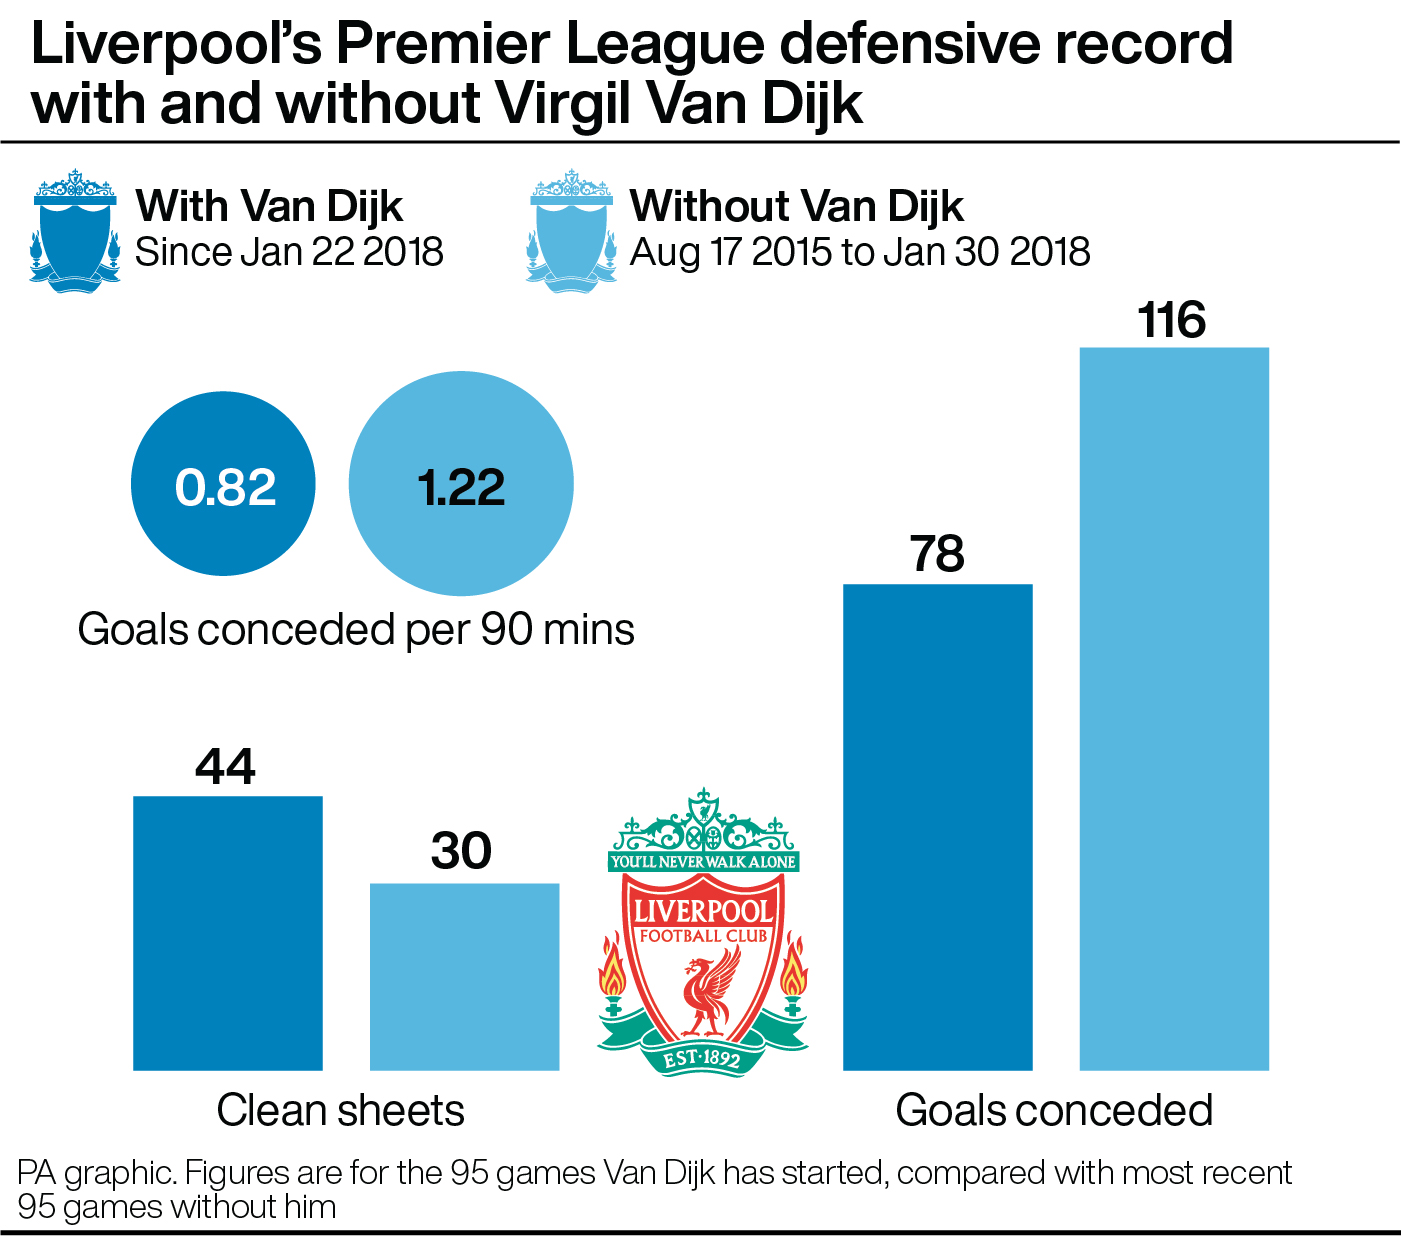 Liverpool's Premier League defensive record with and without Virgil Van Dijk